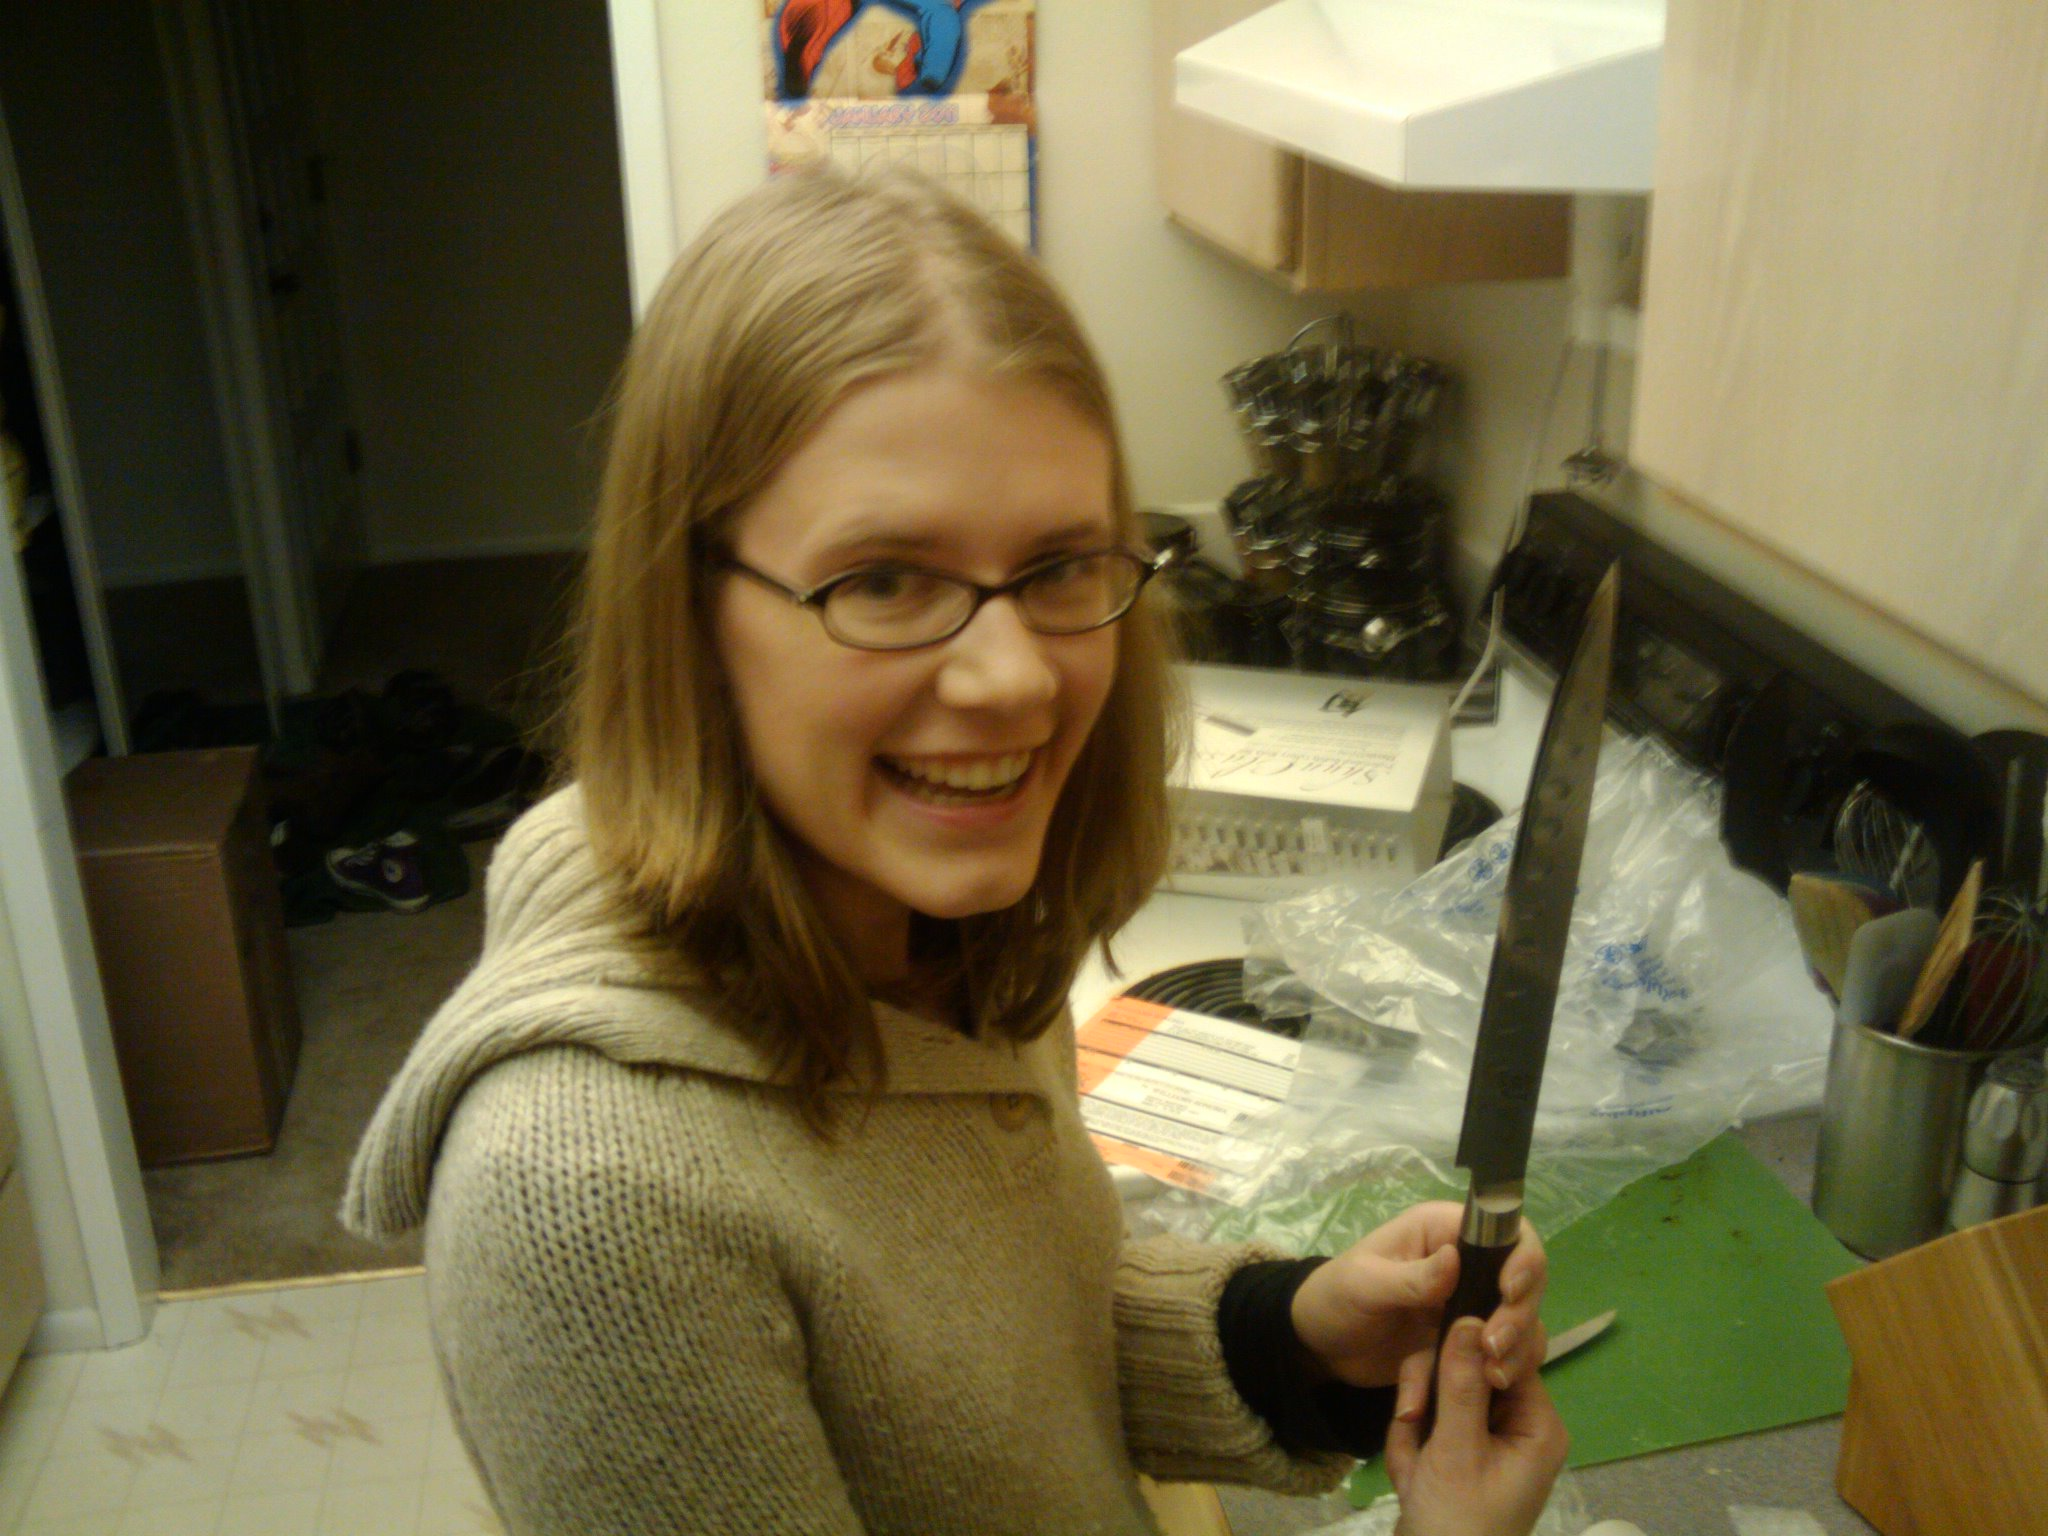 Check out me and my new knives.